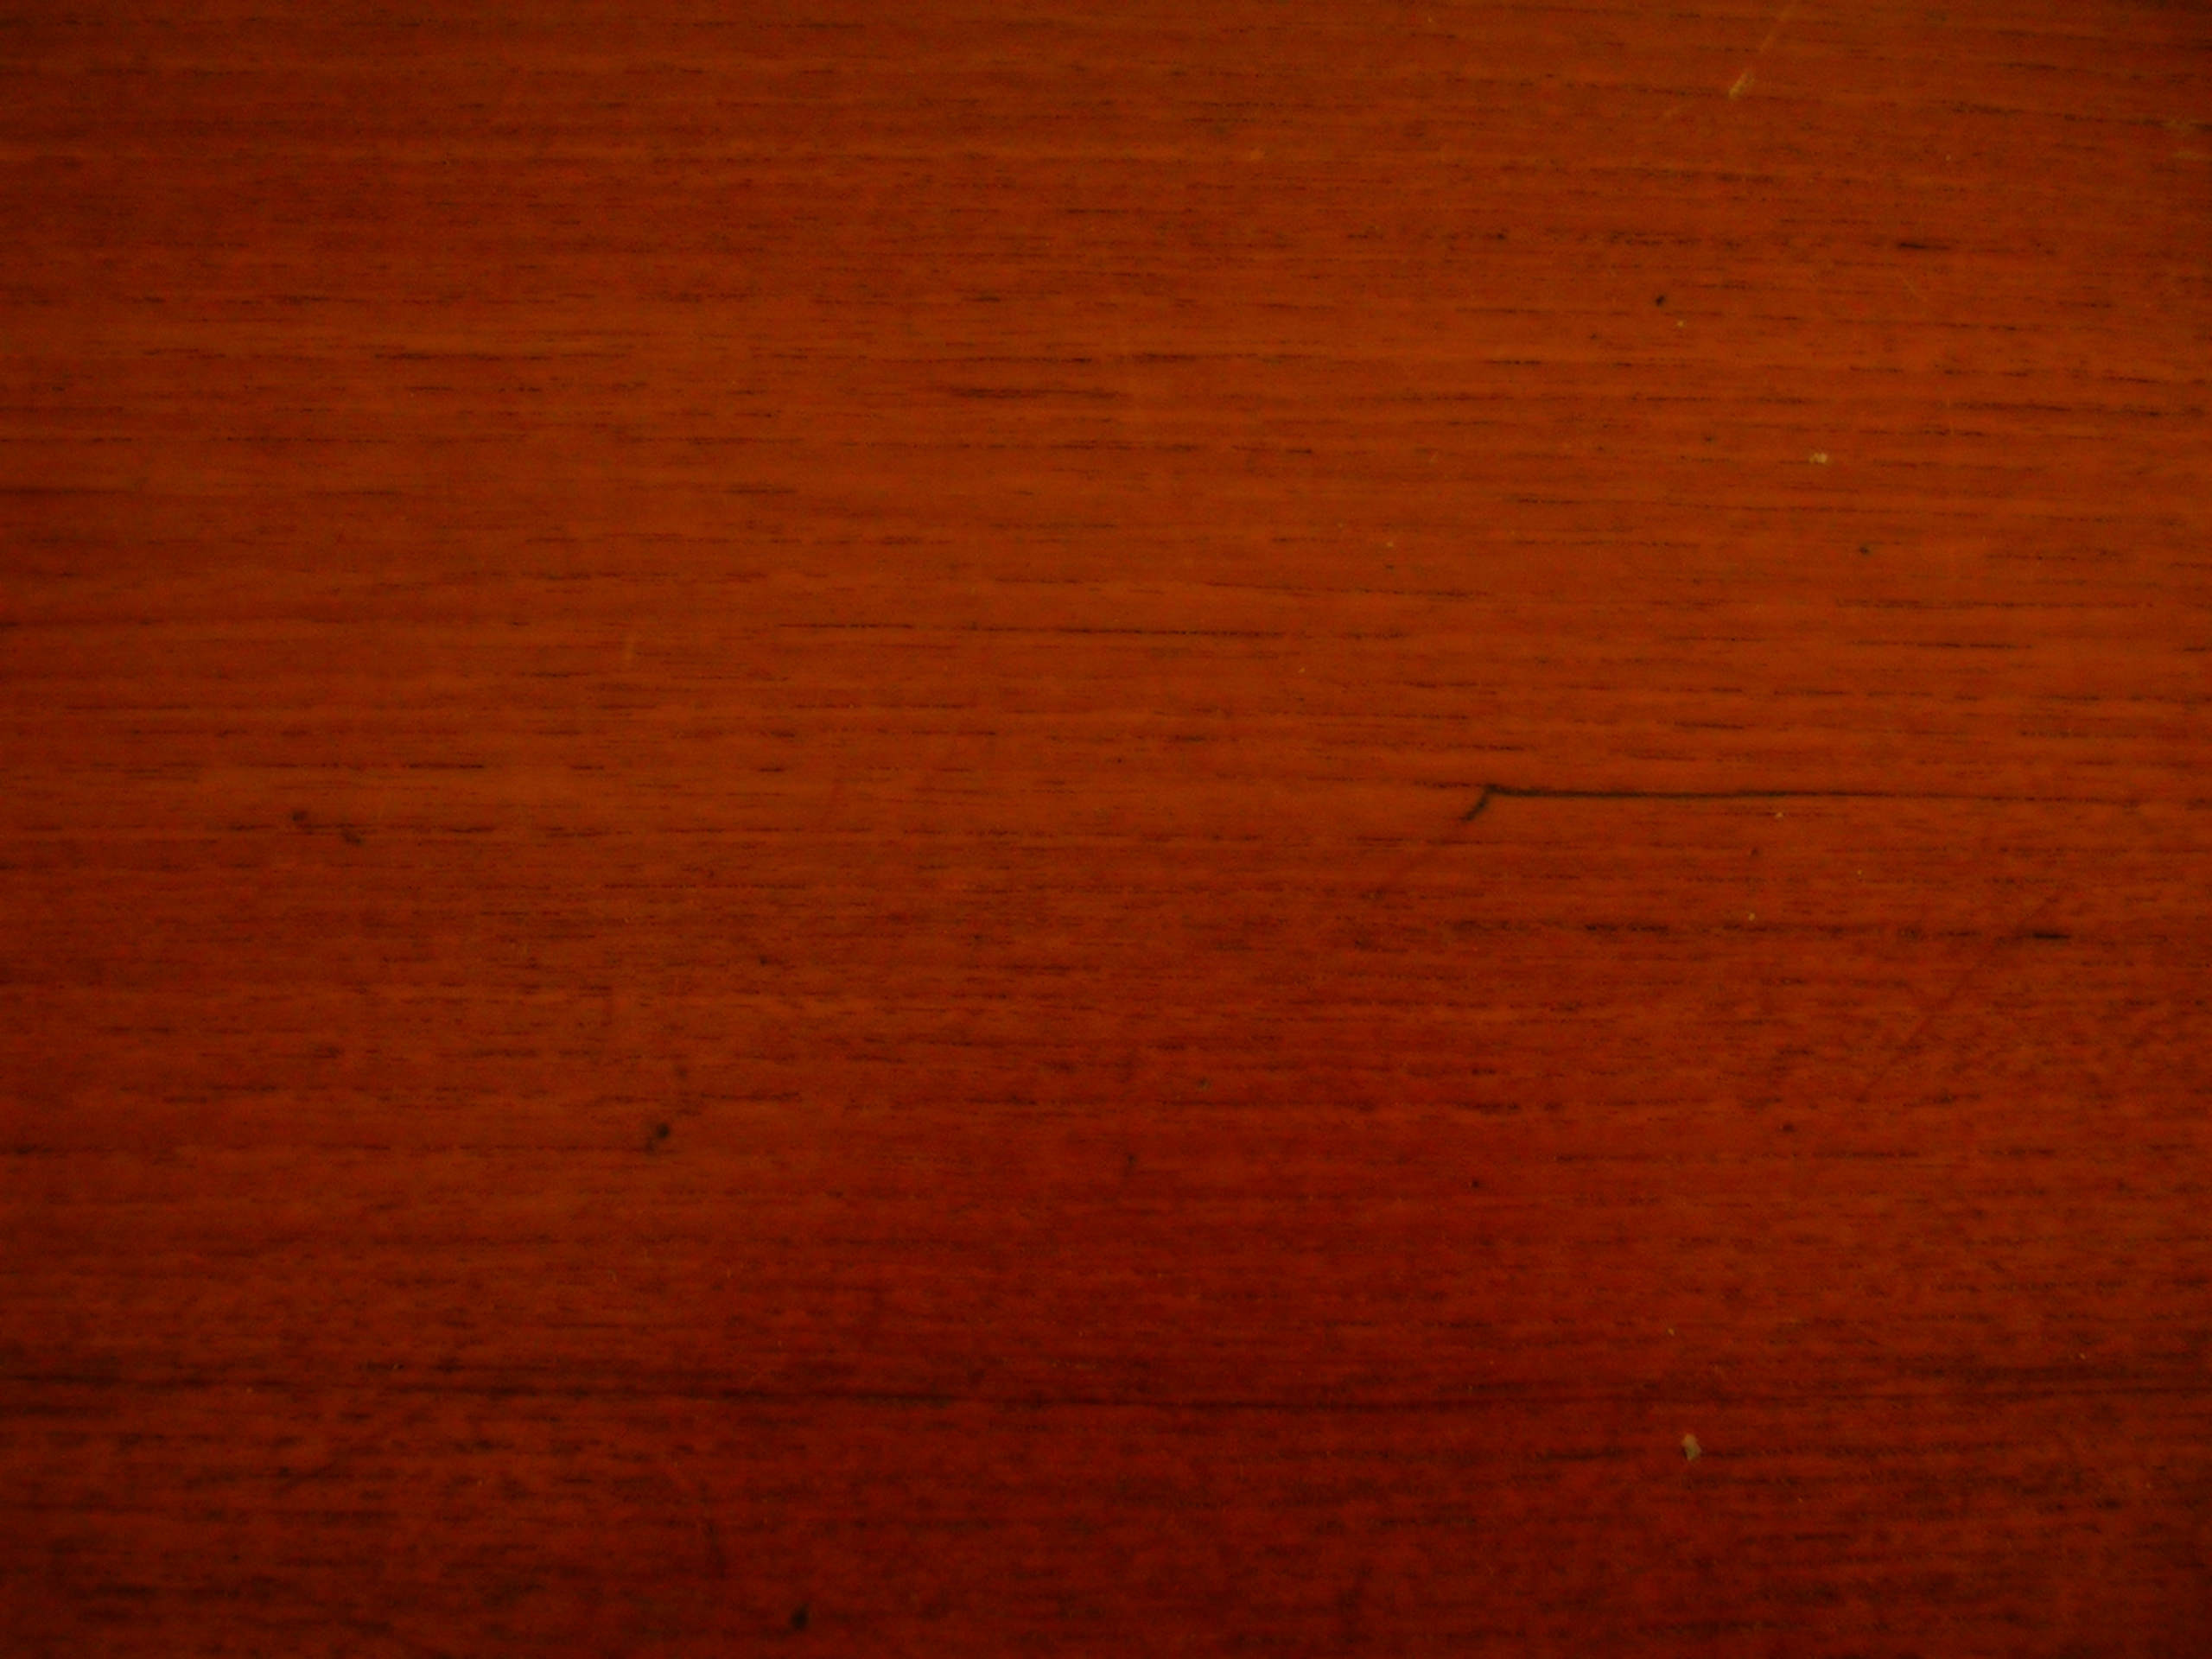 Wood Grain Desktop Wallpaper 183 ①